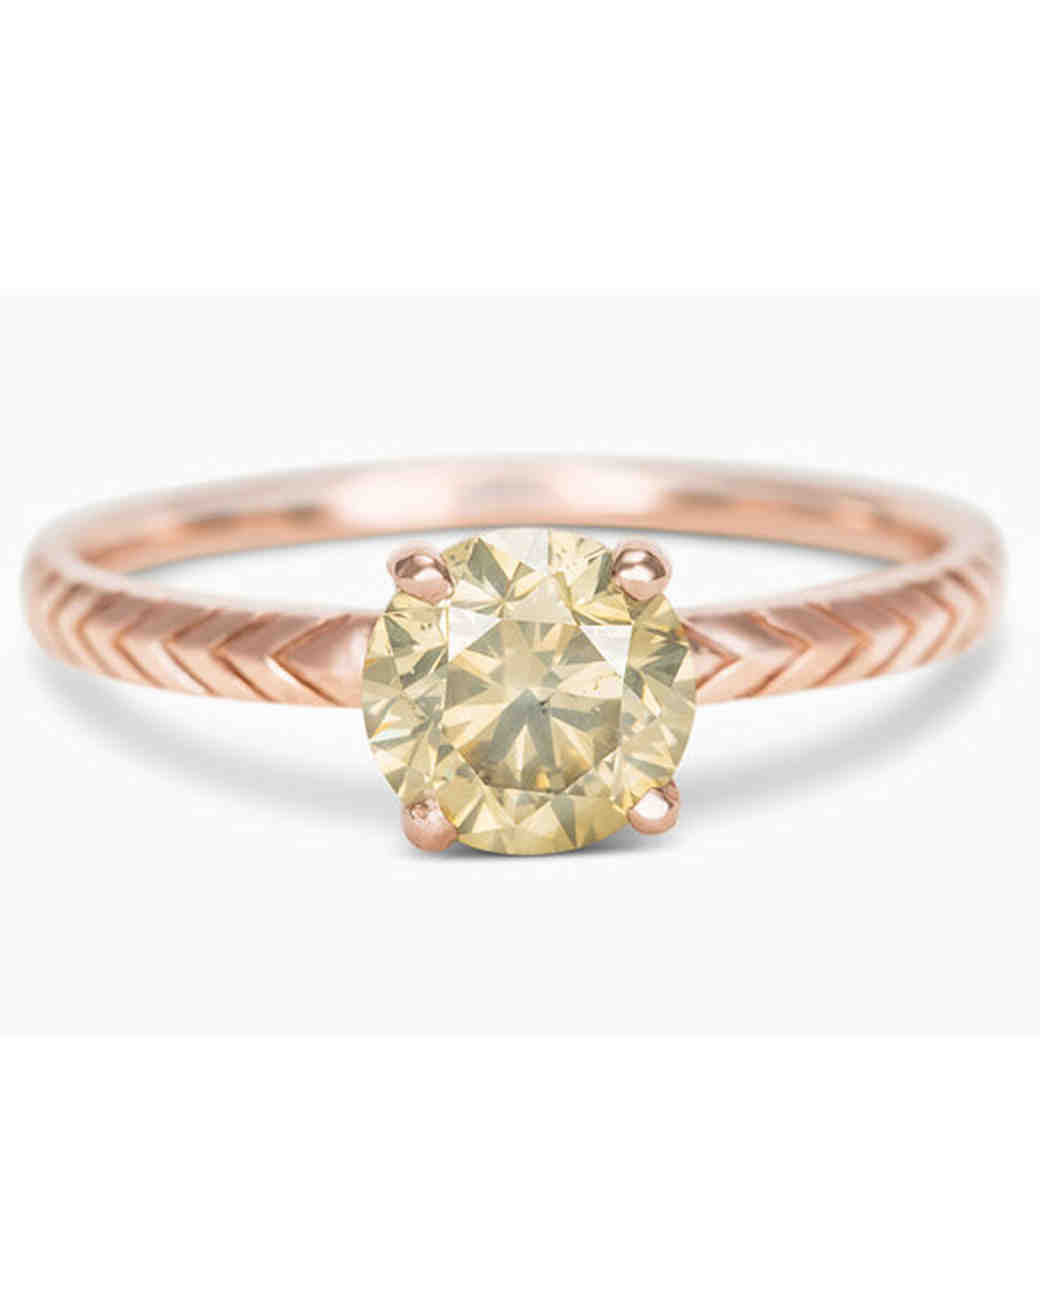 Digby & Iona One of a Kind Solitaire engagement ring in rose gold